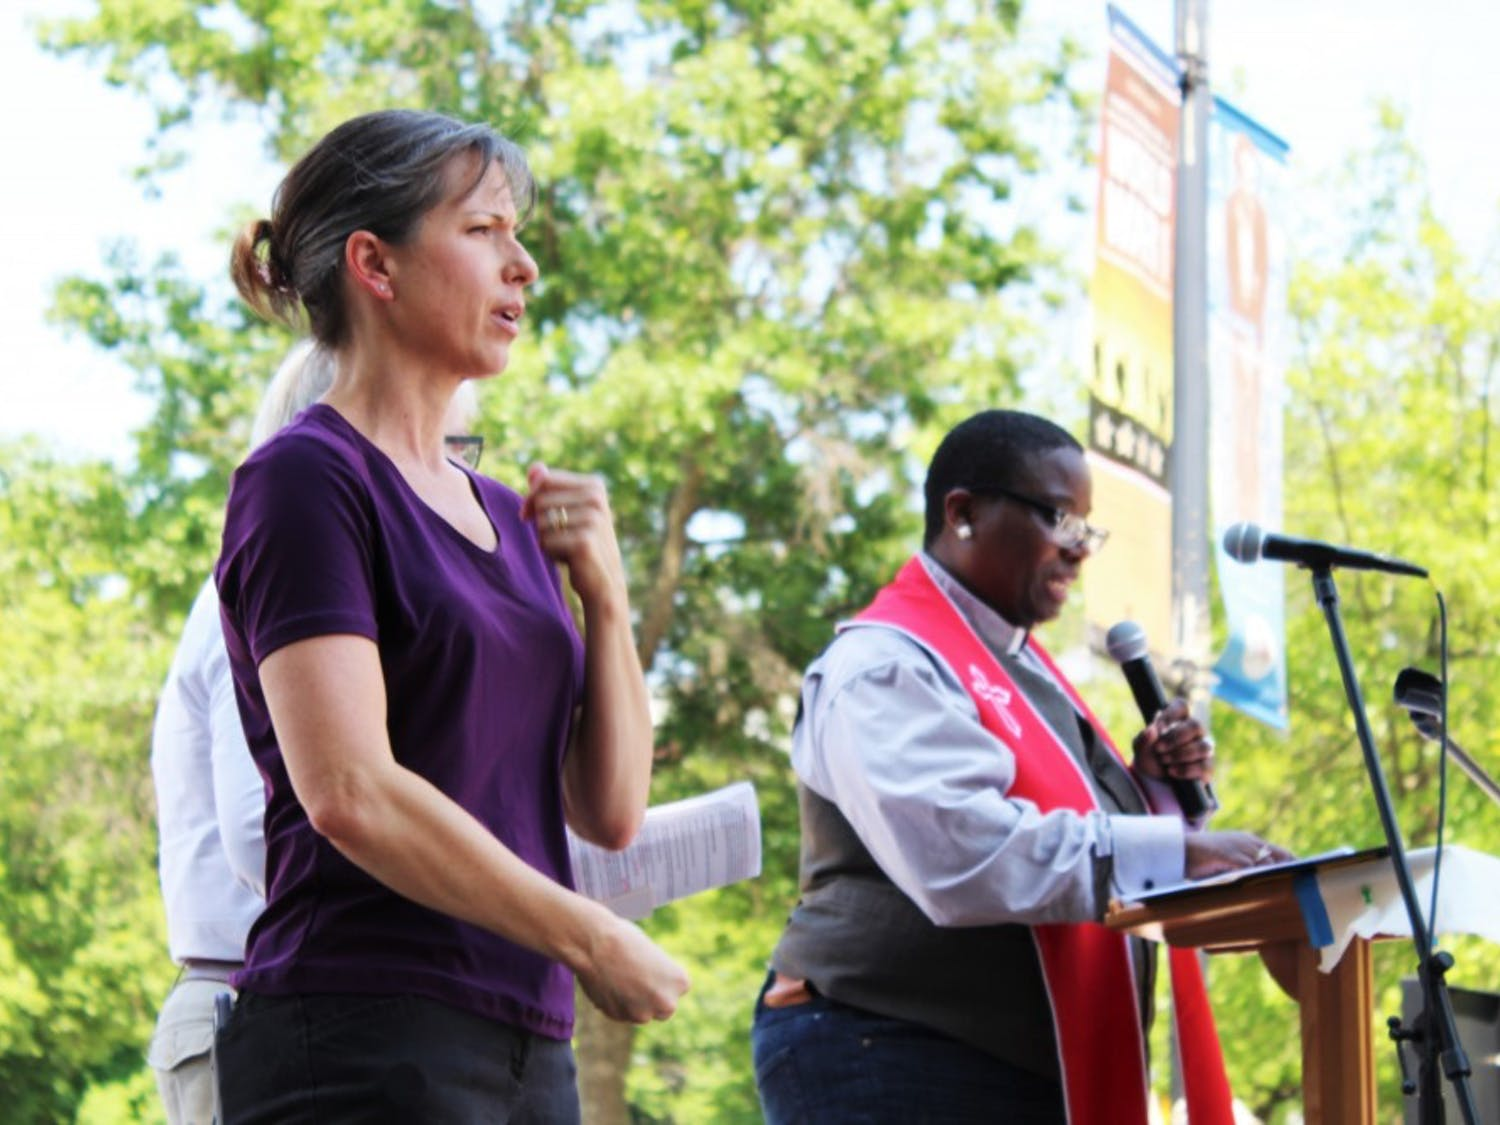 A sign language interpreter translates a speaker's words during the North Carolina Poor People's Campaign's protest on May 14.